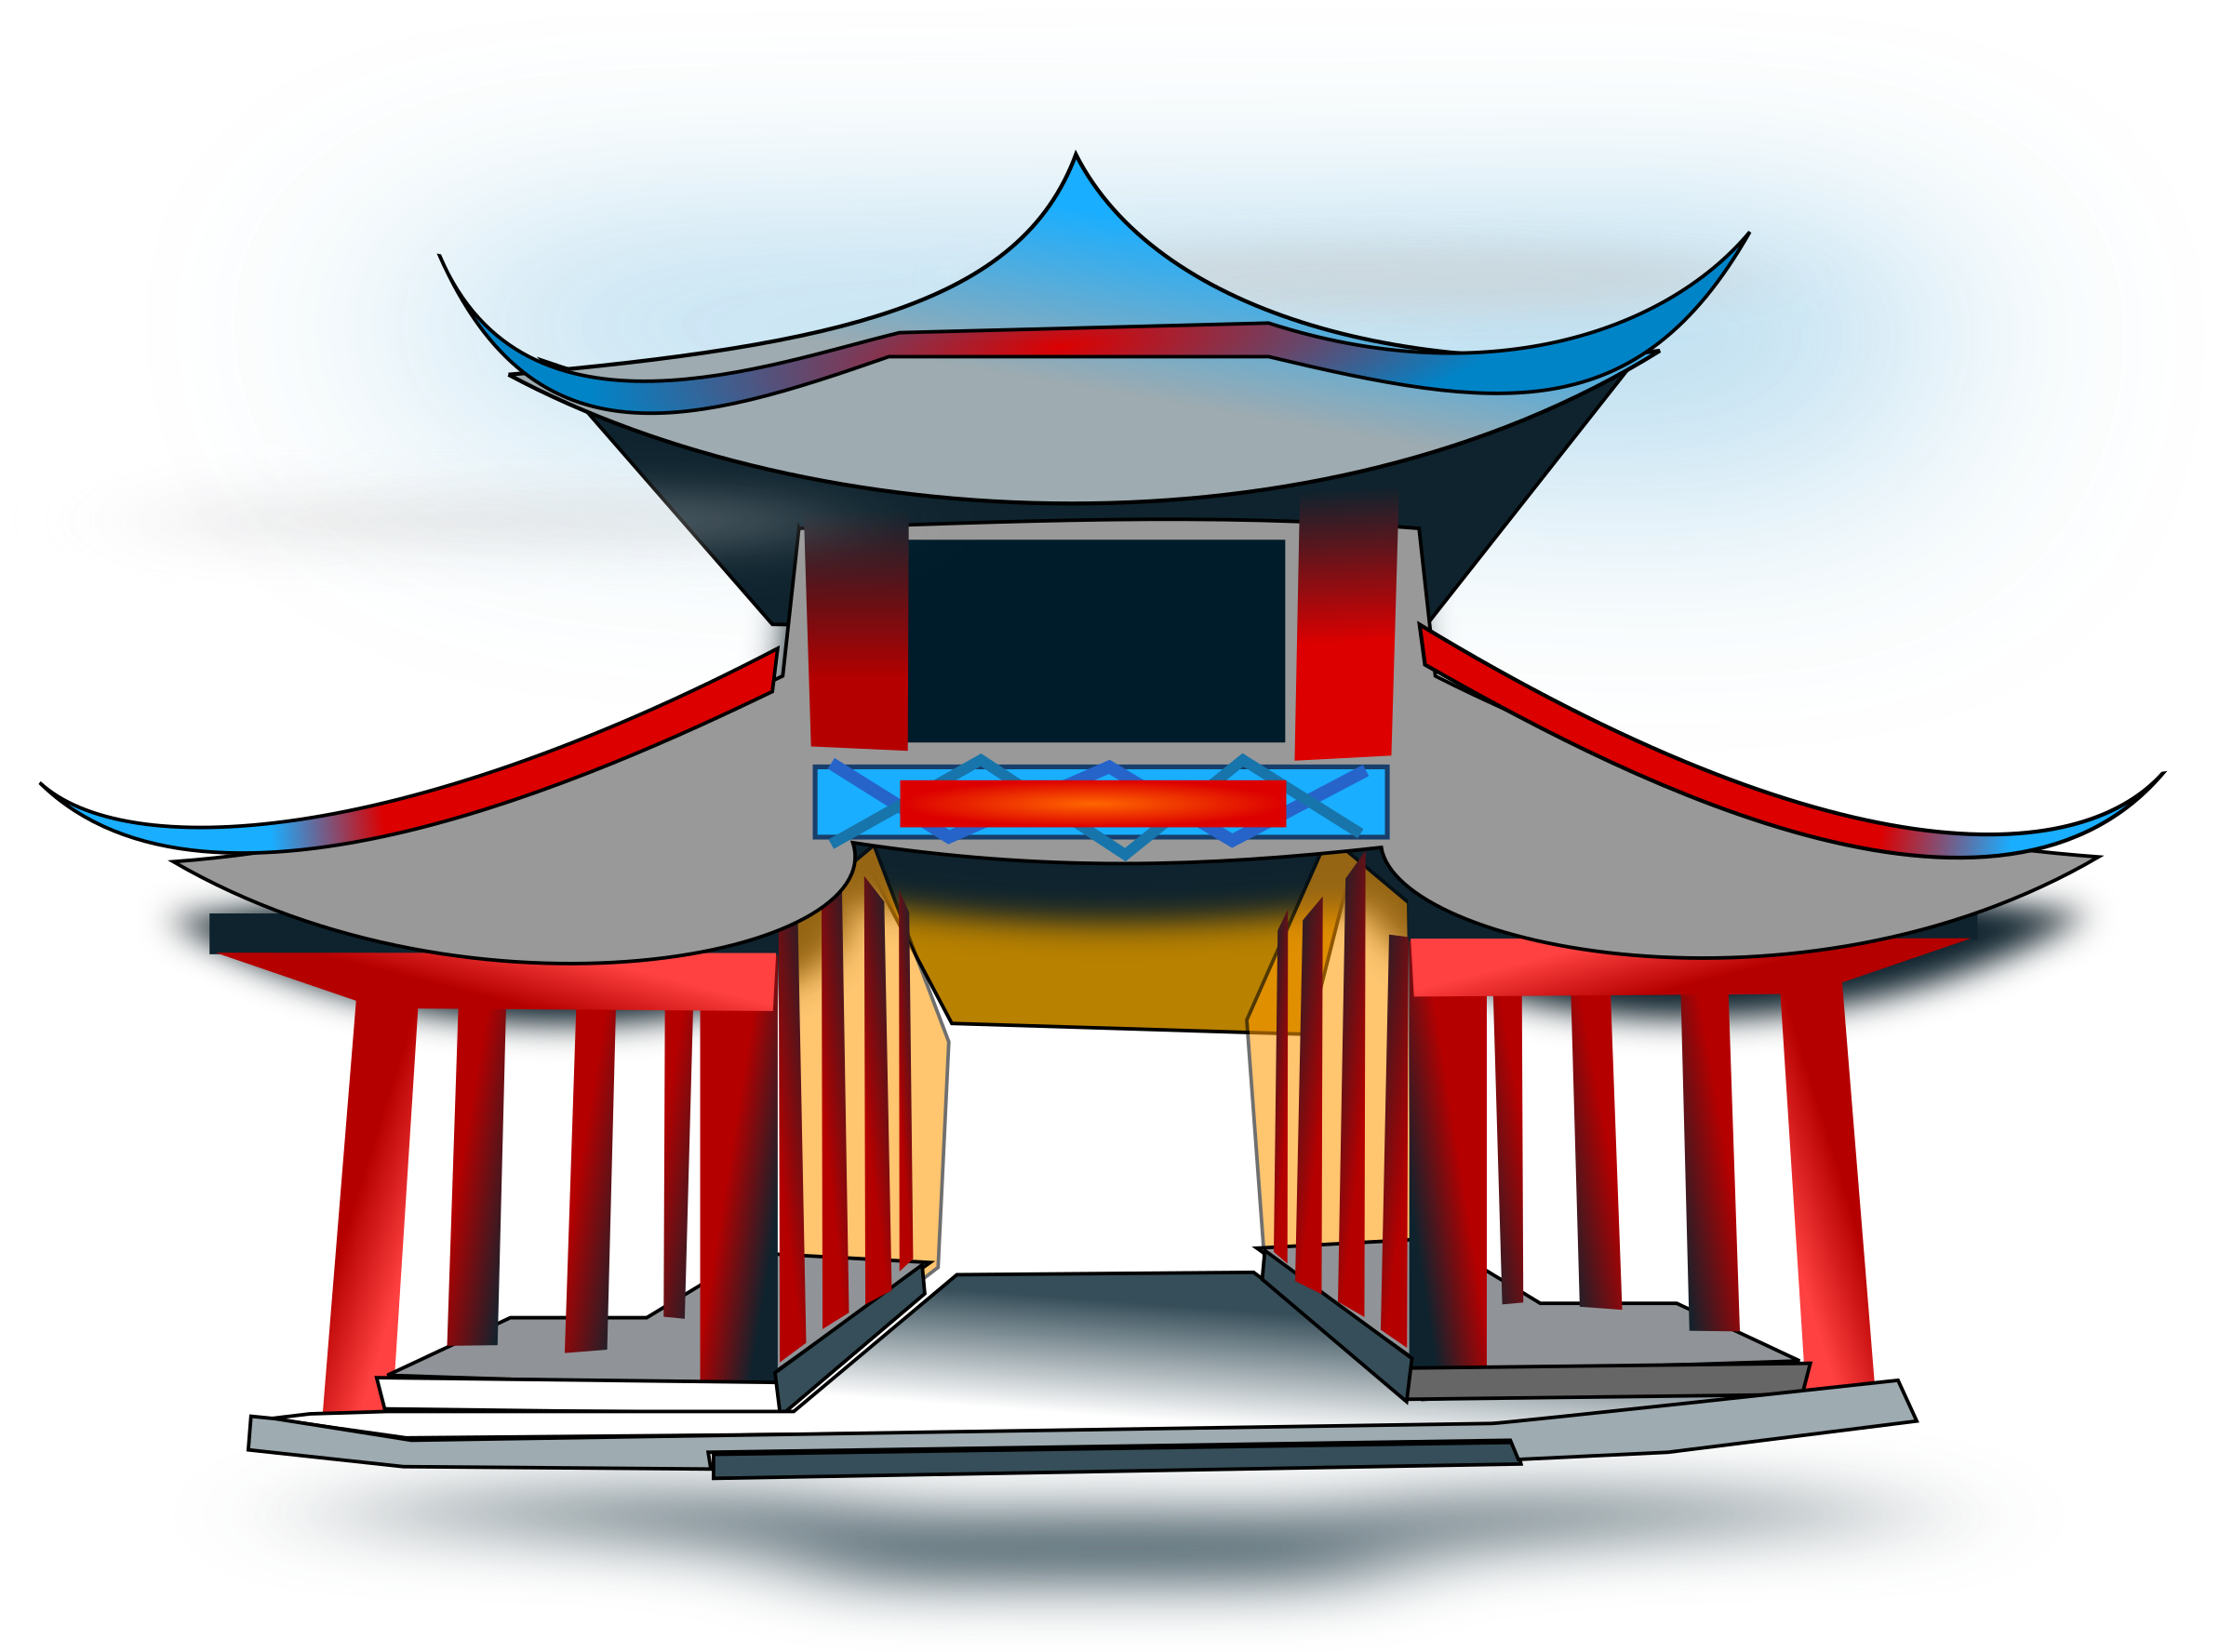 Architecure by netalloy eclectic. China clipart house chinese